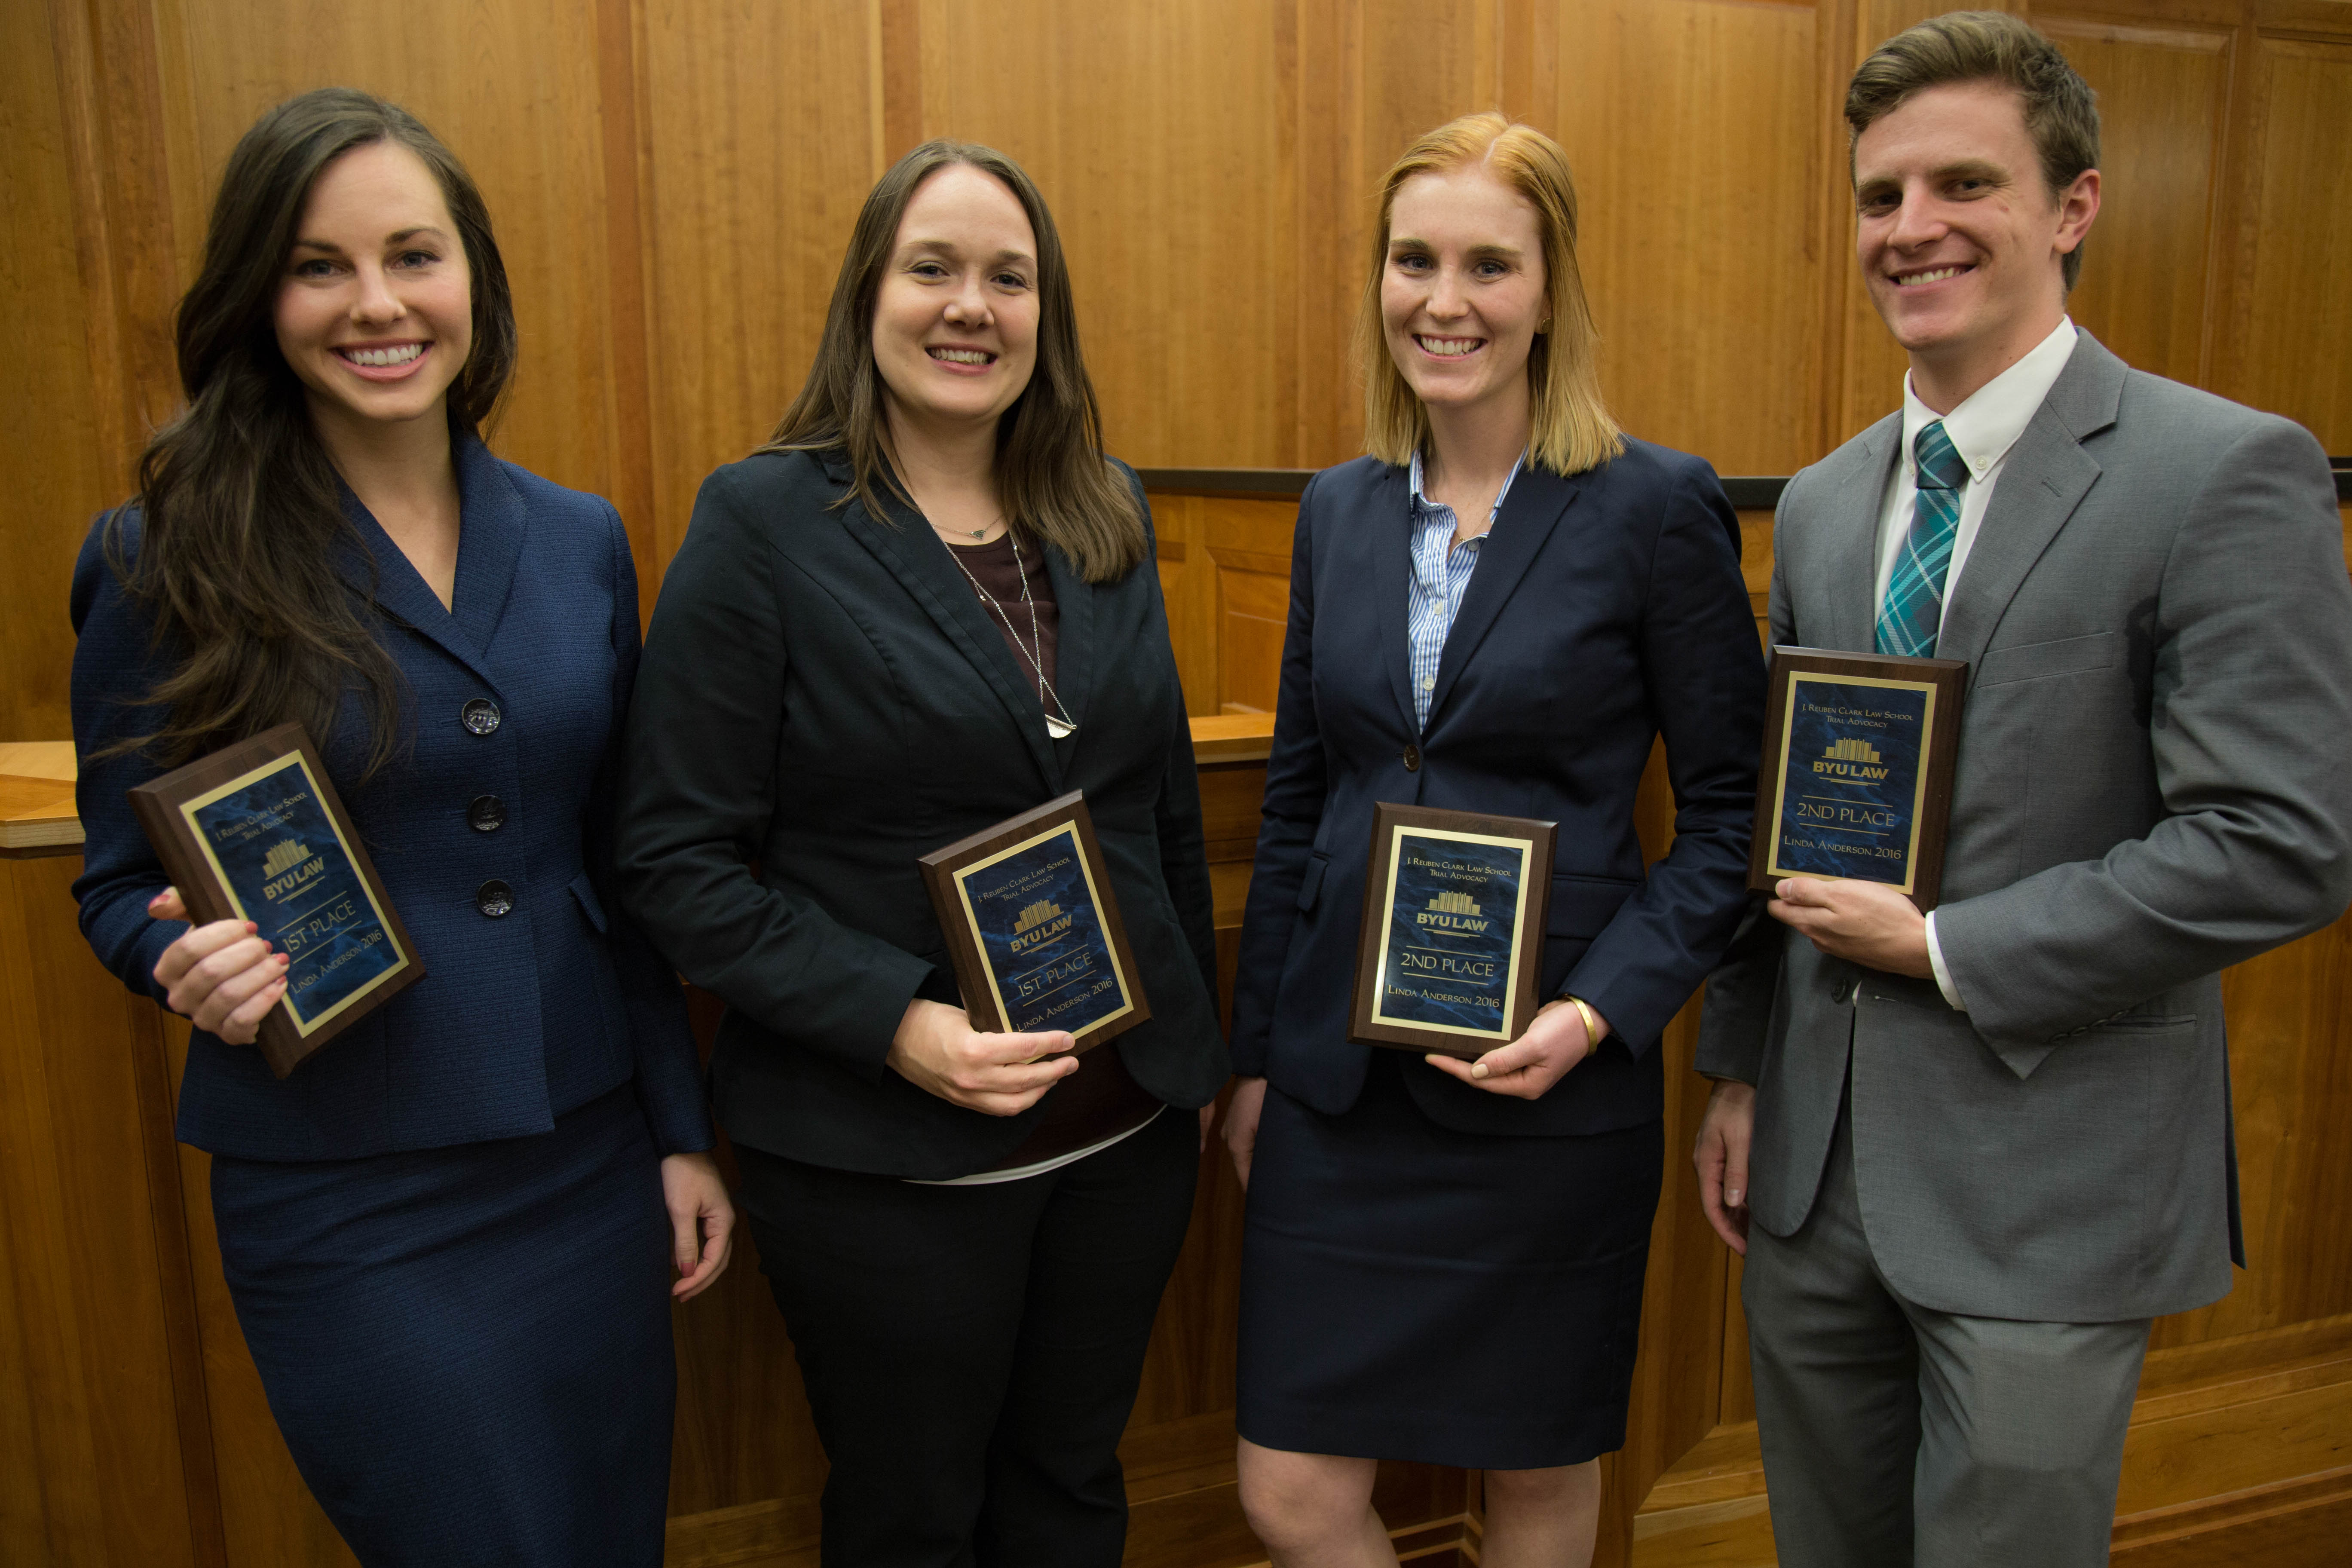 Krista-Lee Crook and Samantha Scott hold their first place plaques. They stand next to their competition, Bronwen Evans and Mike Snell. (BYU Law School)